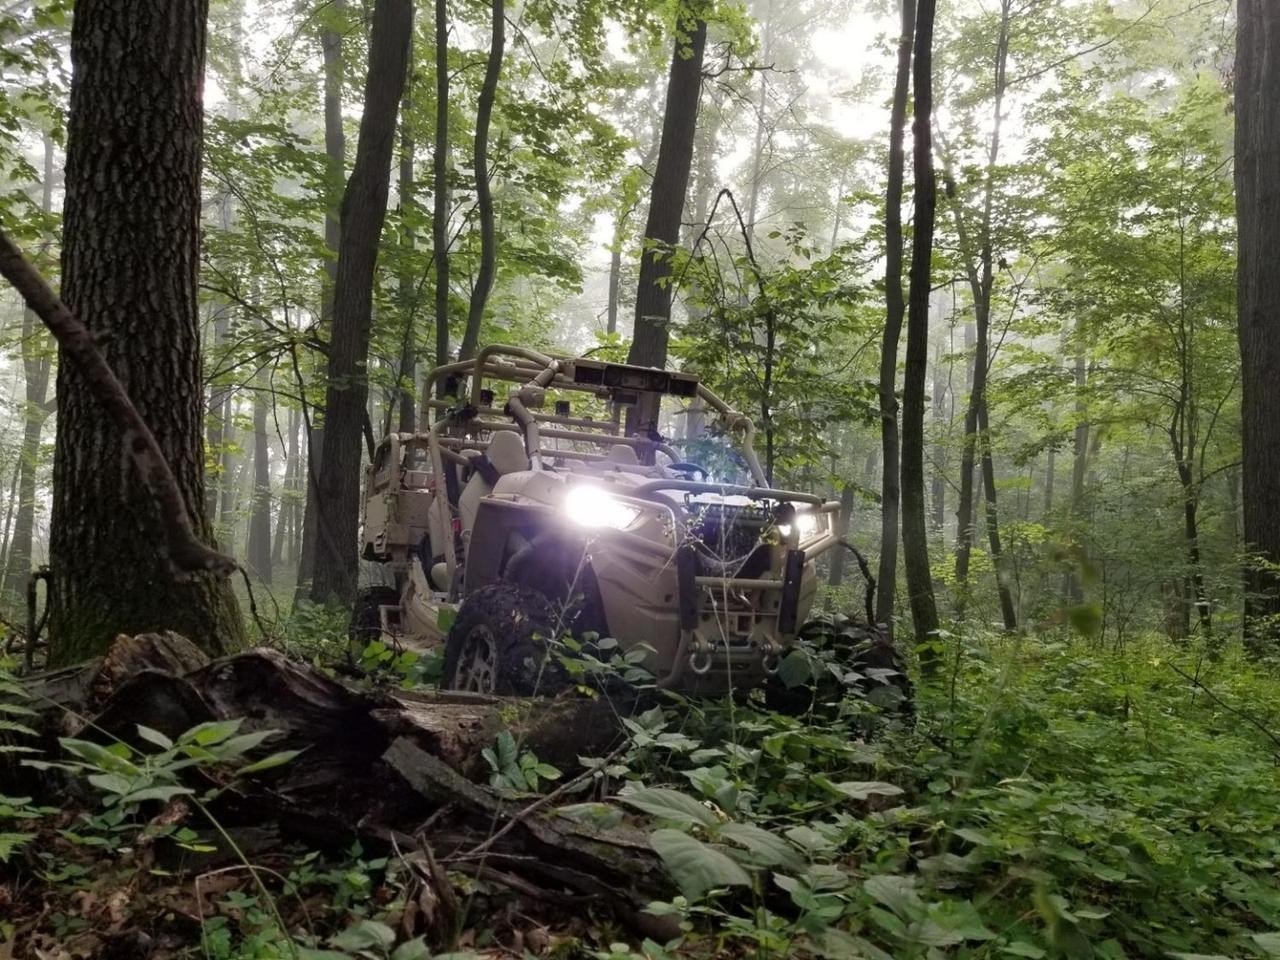 The MRZR X is a robotic, multi-role vehicle